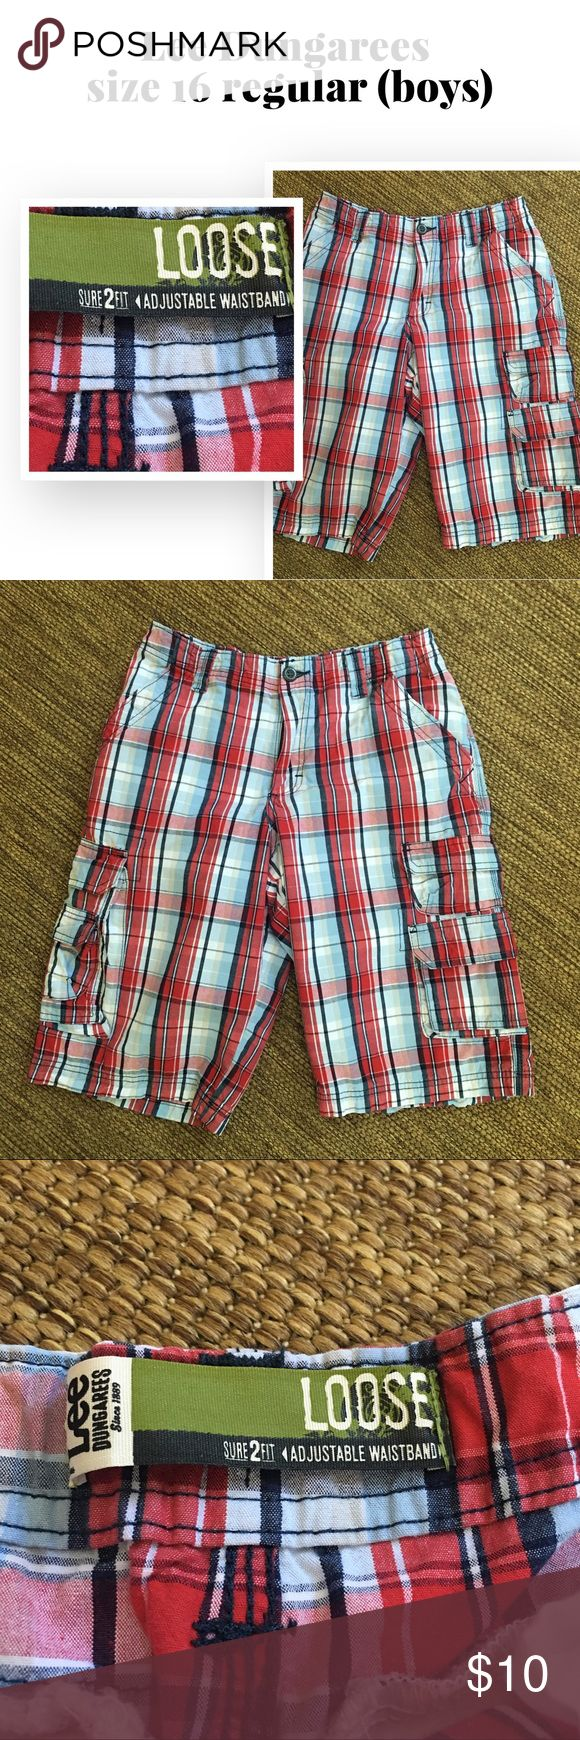 Lee Dungaree Boys Cargo Shorts Great looking cargo shorts size 16 regular. Lee Dungaree Bottoms Shorts